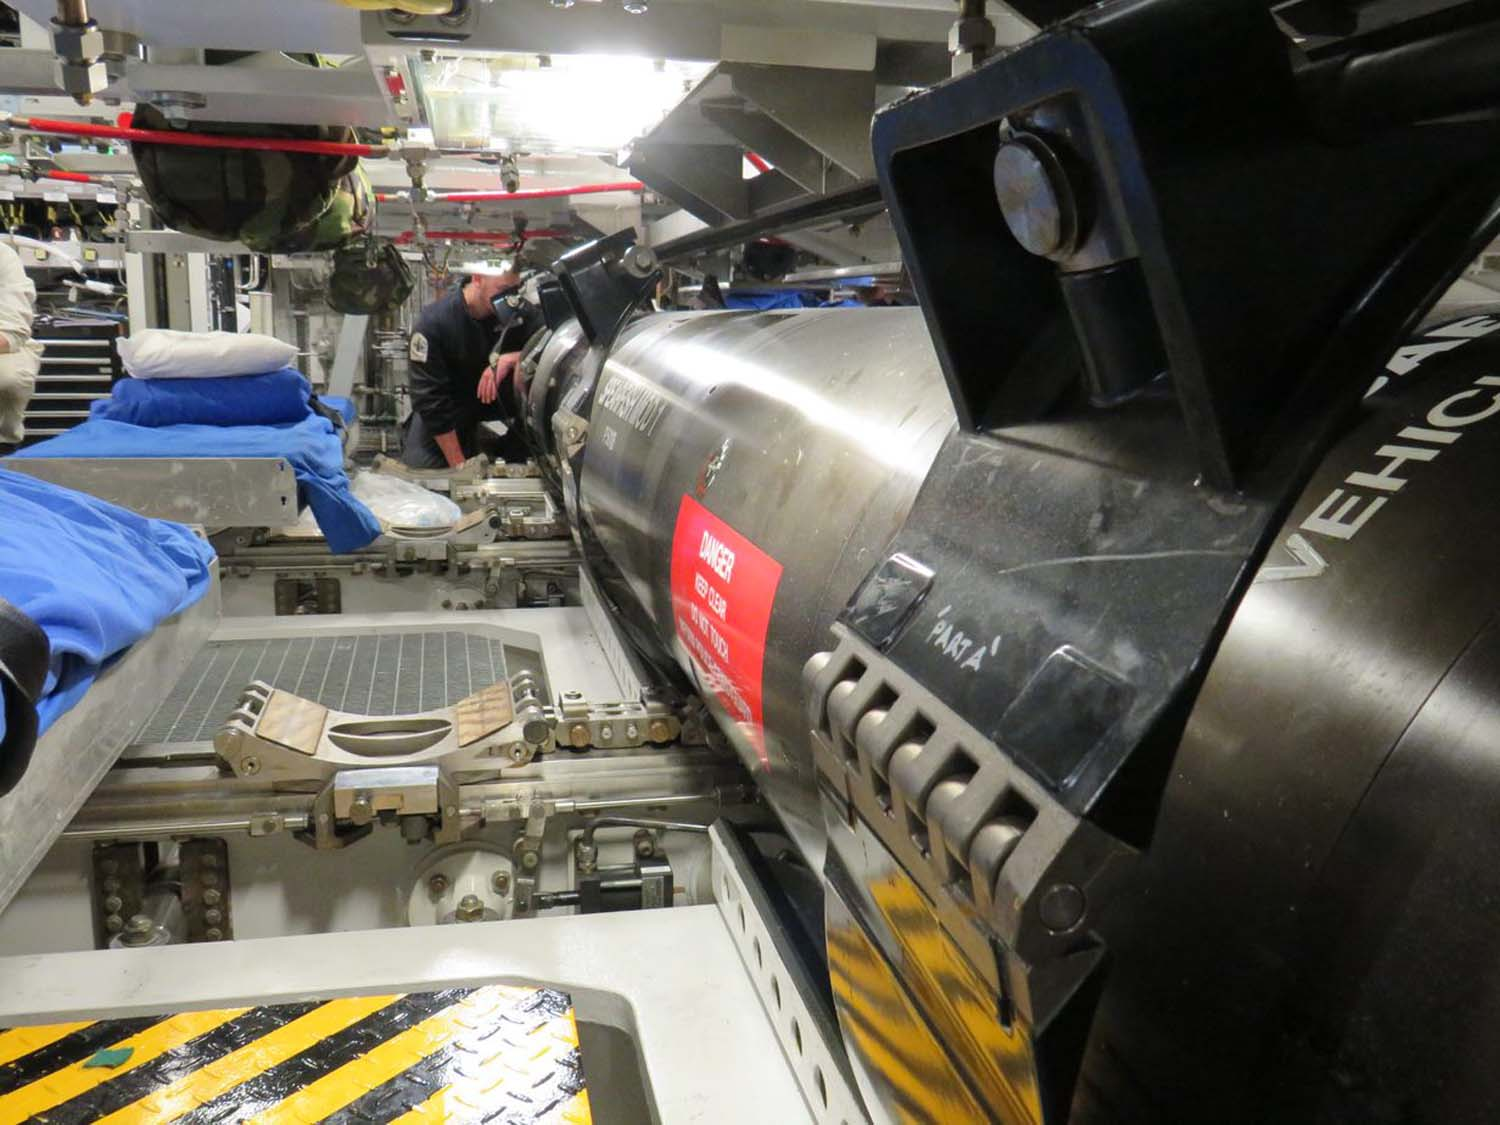 spearfish torpedo 5 - naval post- naval news and information